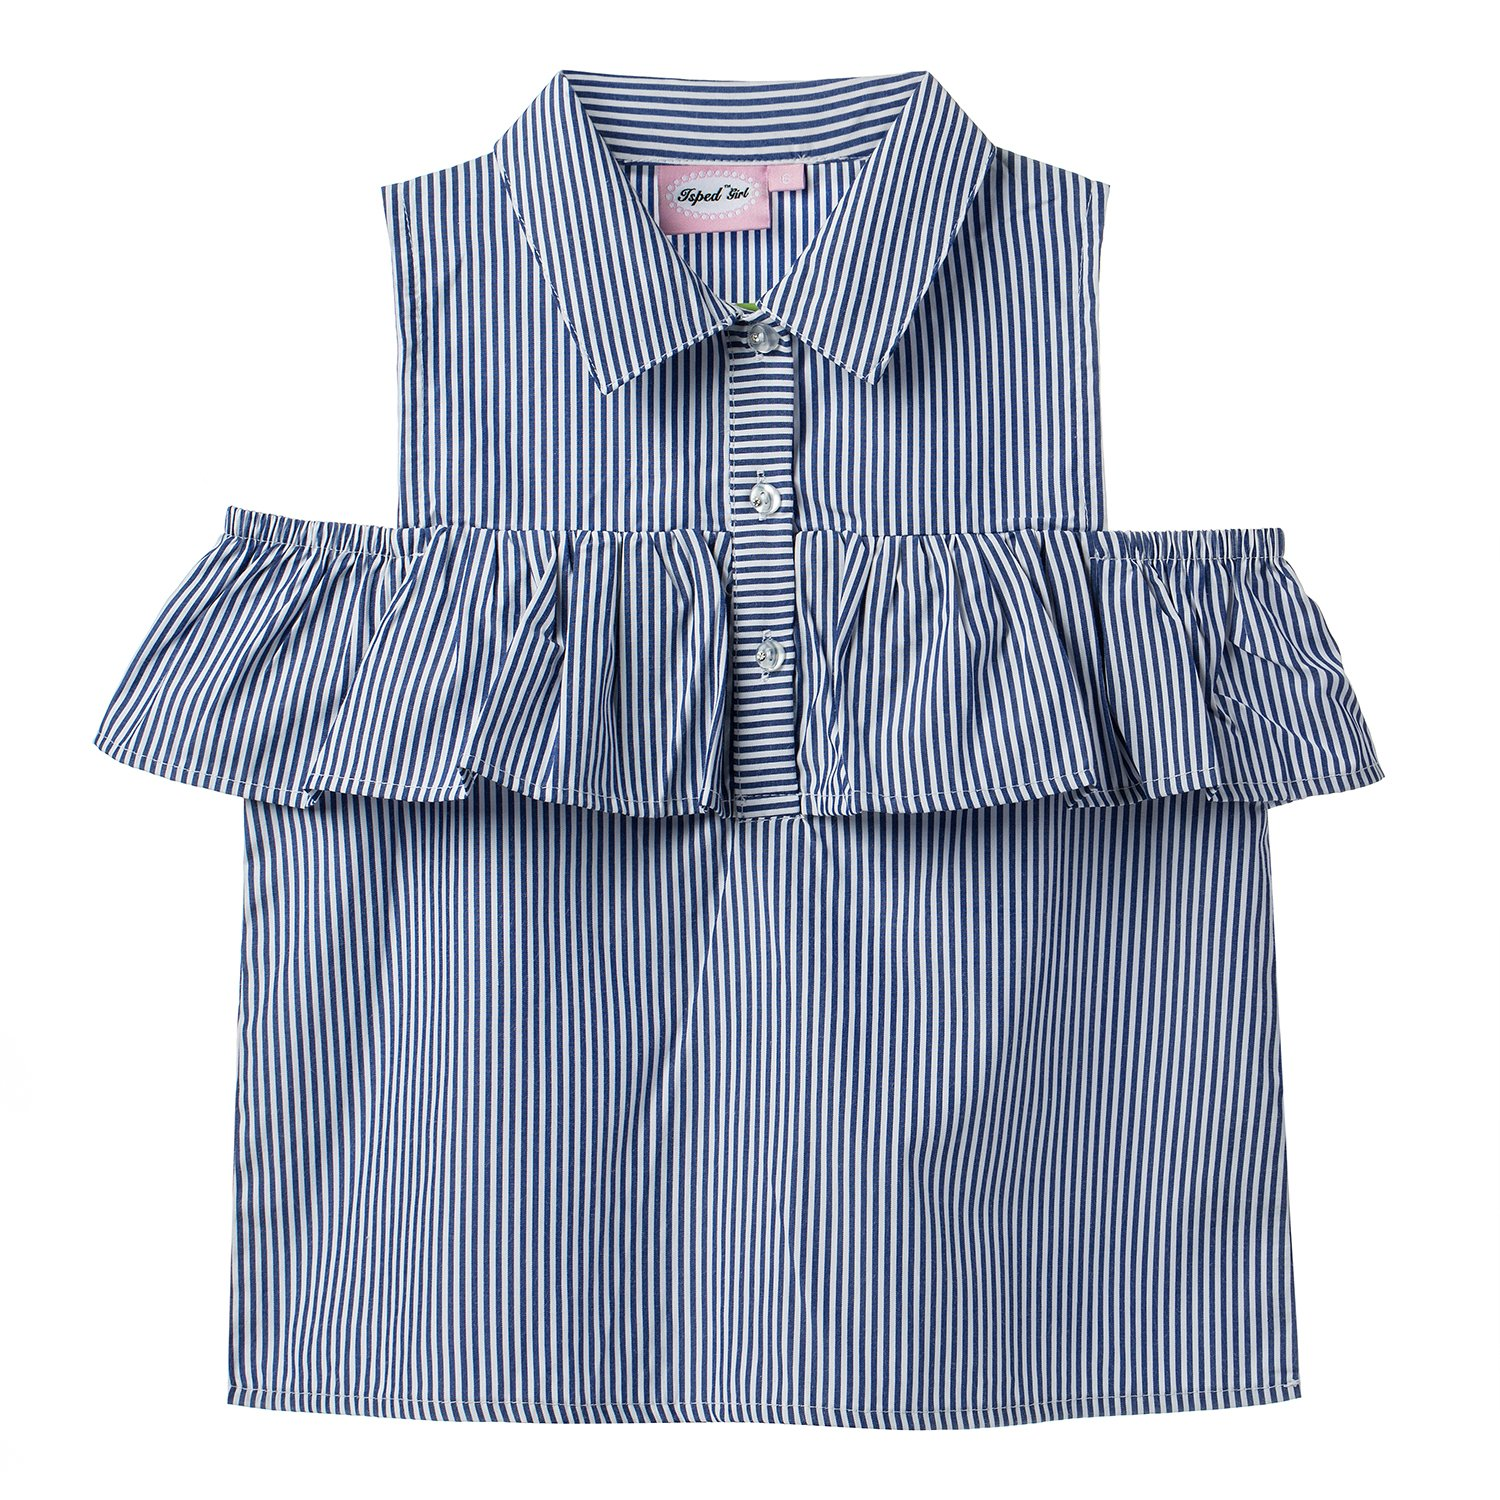 Isped Girls Striped Sleeveless Shirts with Ruffle Summer Casual Blouses Blue Size 8Y